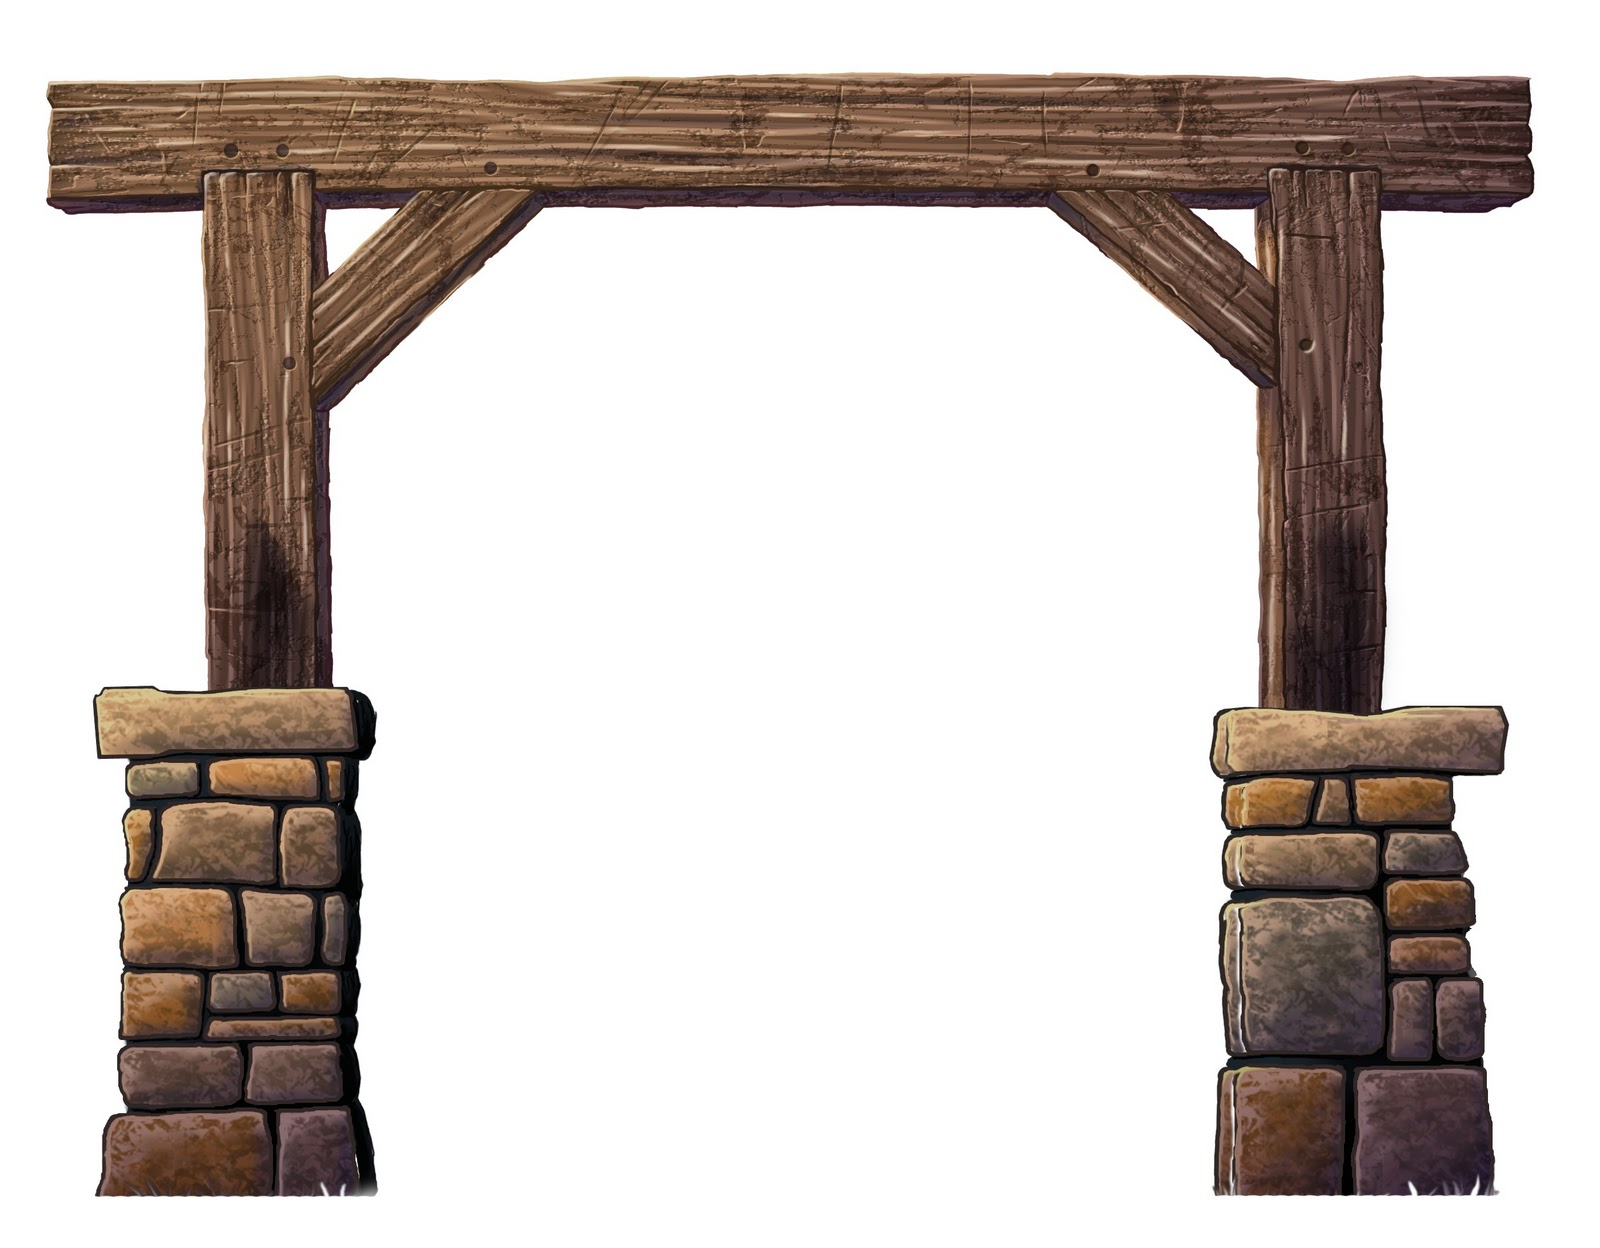 Farm gate clipart.